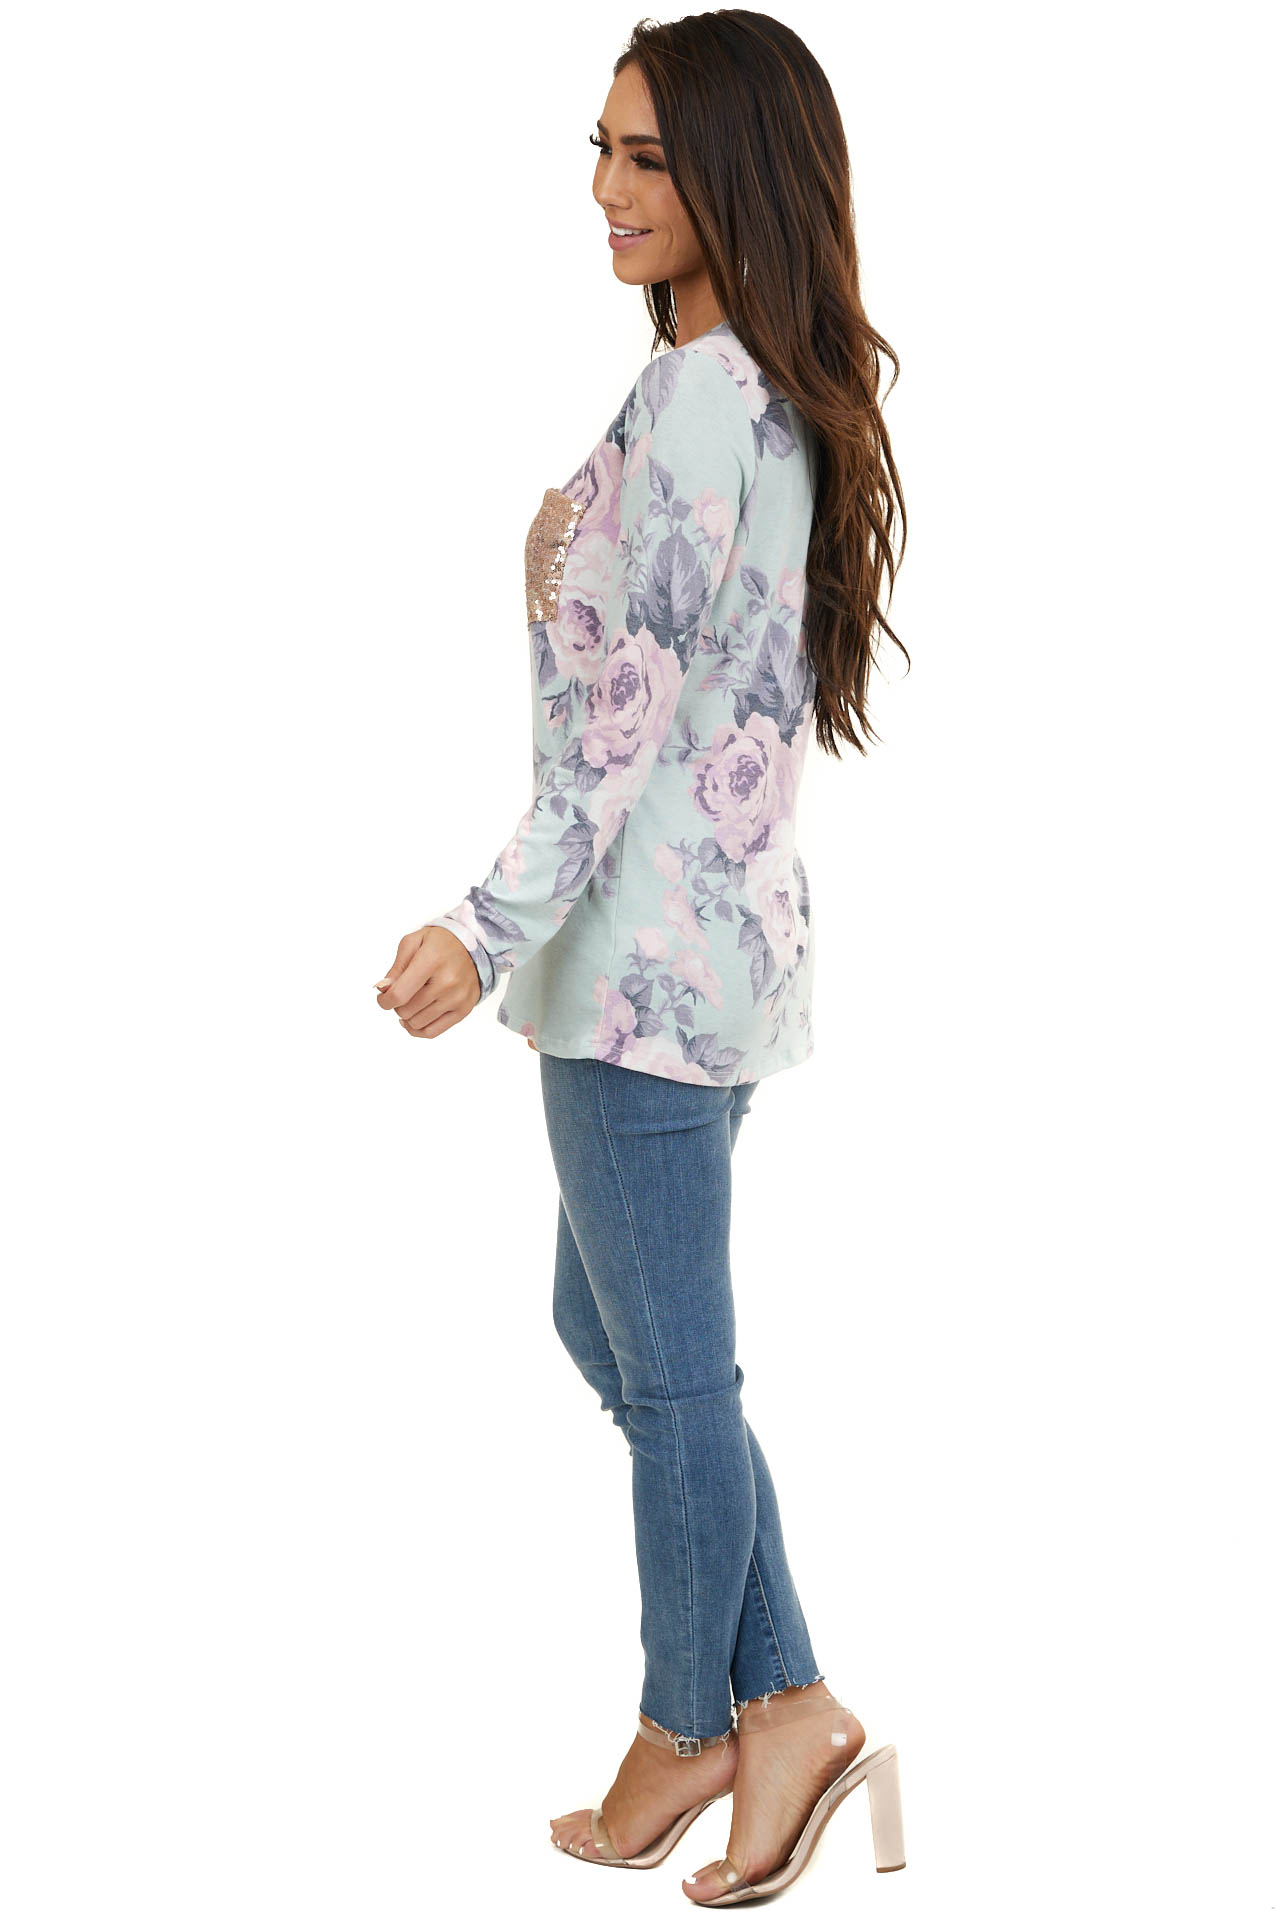 Seafoam Floral Long Sleeve Top with Sequin Pocket Detail